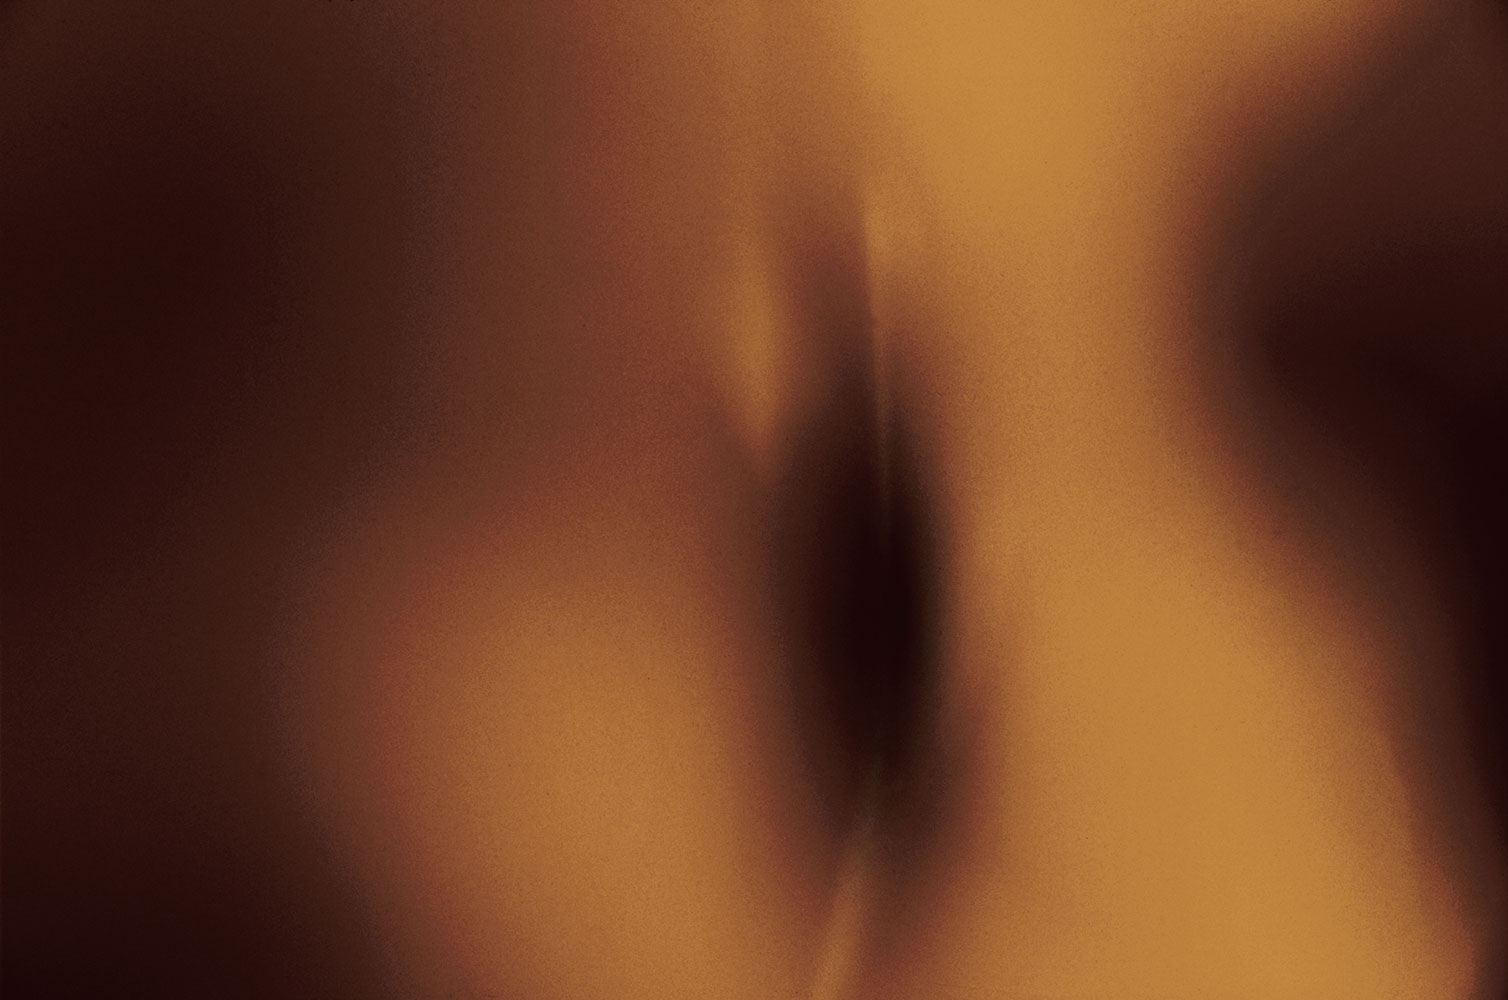 frisson:   coupling    nude    torsos   desert   wildflower  close intimate   sepia   attraction   naked    skin   magnetism  abstract